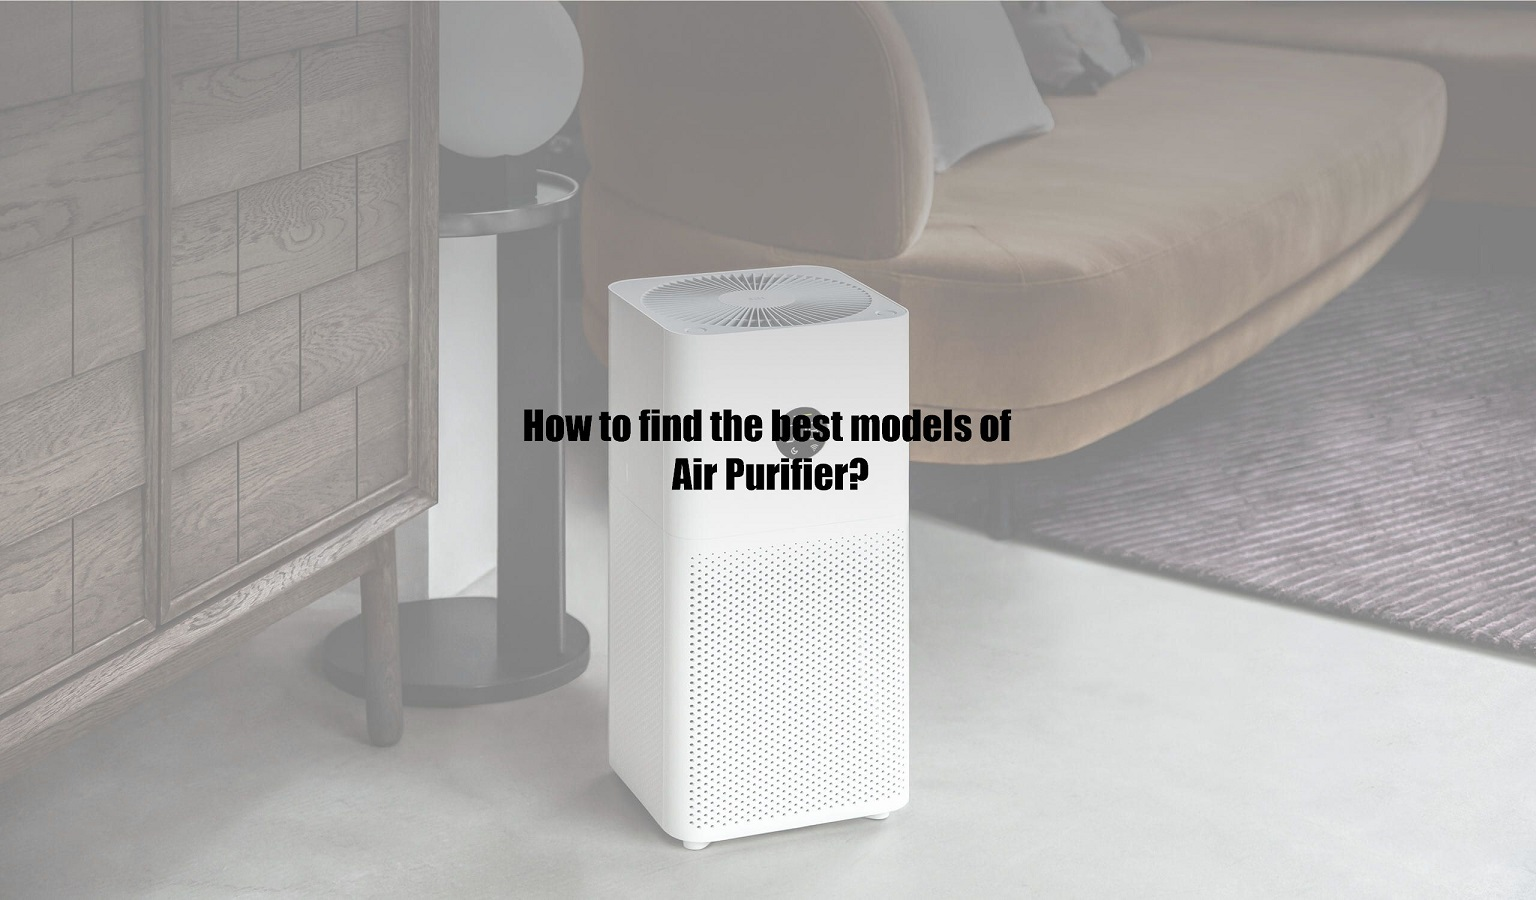 How to find the best models of Air Purifier?